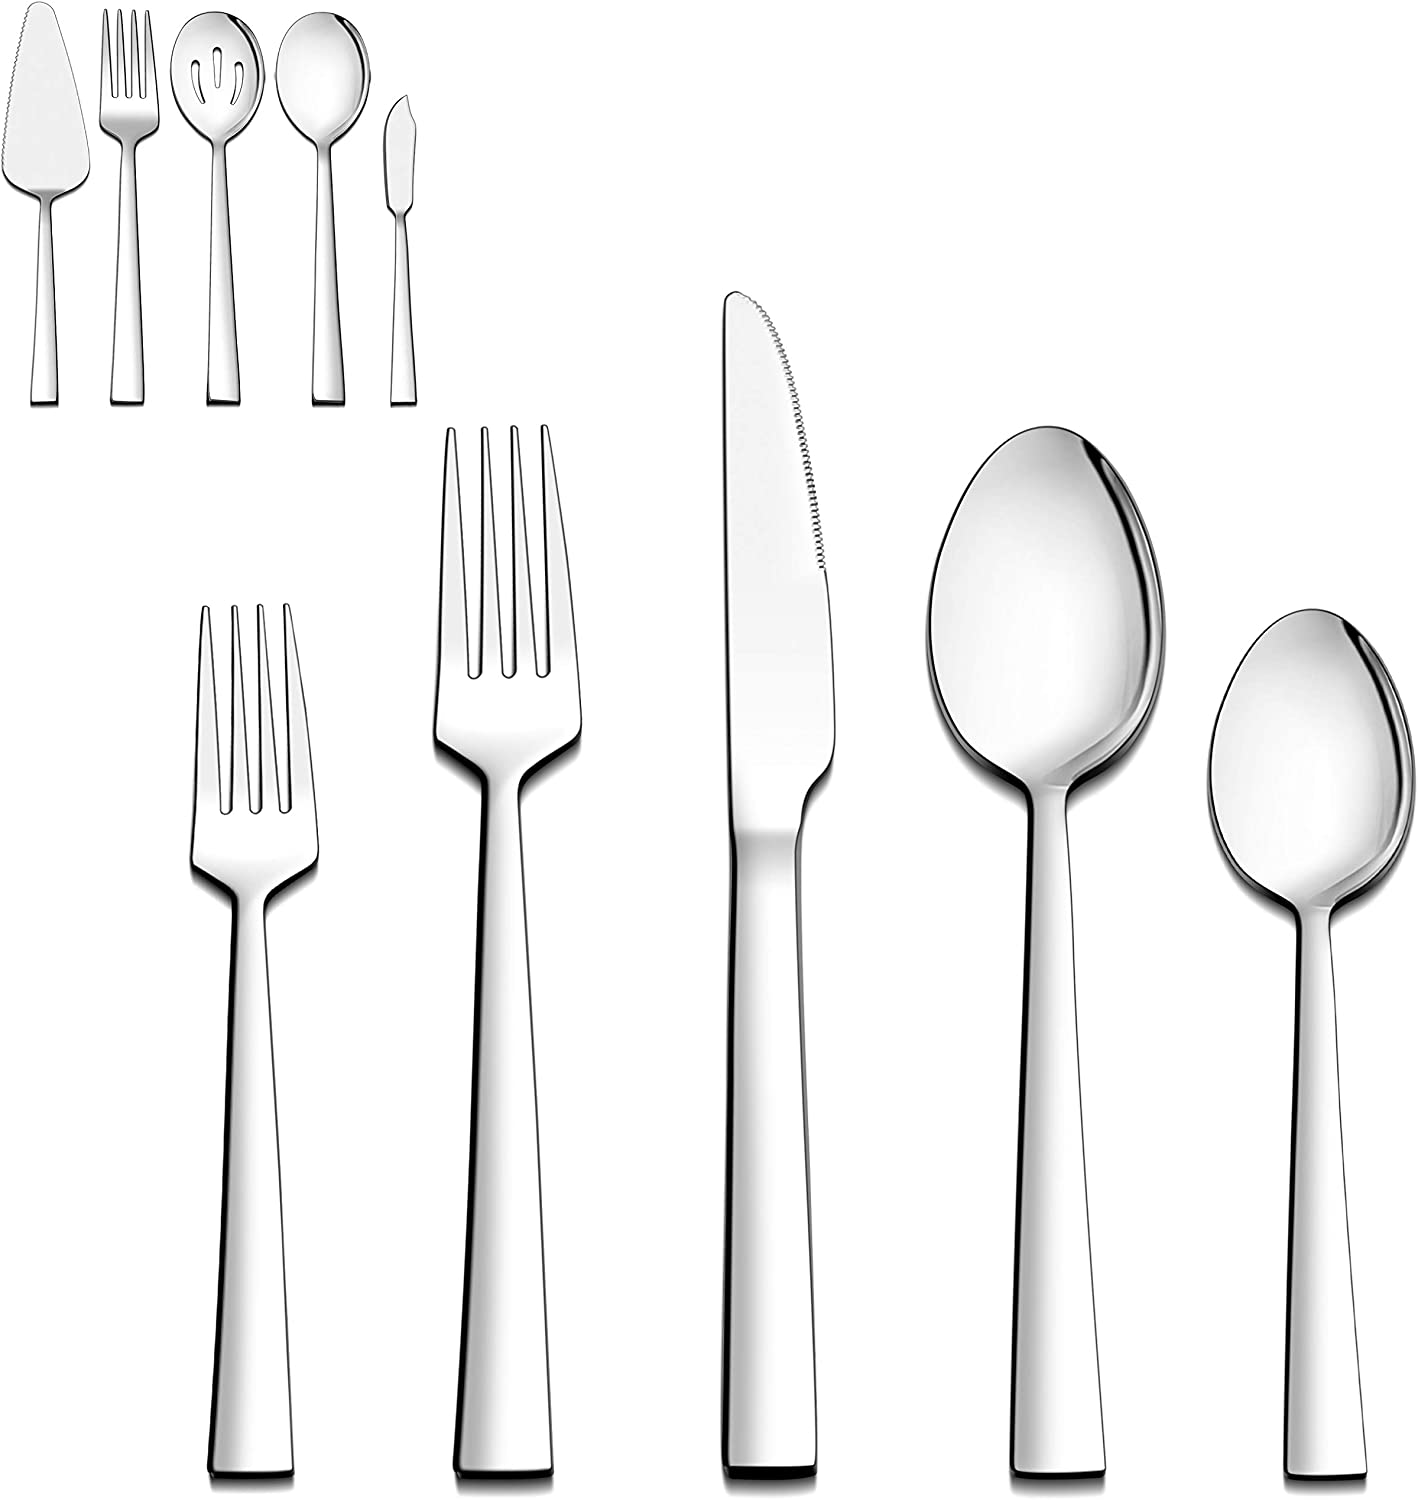 Dishwasher Safe Mirror Finished 5 Pieces Stainless Steel Hostess Silverware Flatware Cutlery Serving Set LIANYU Serving Utensils